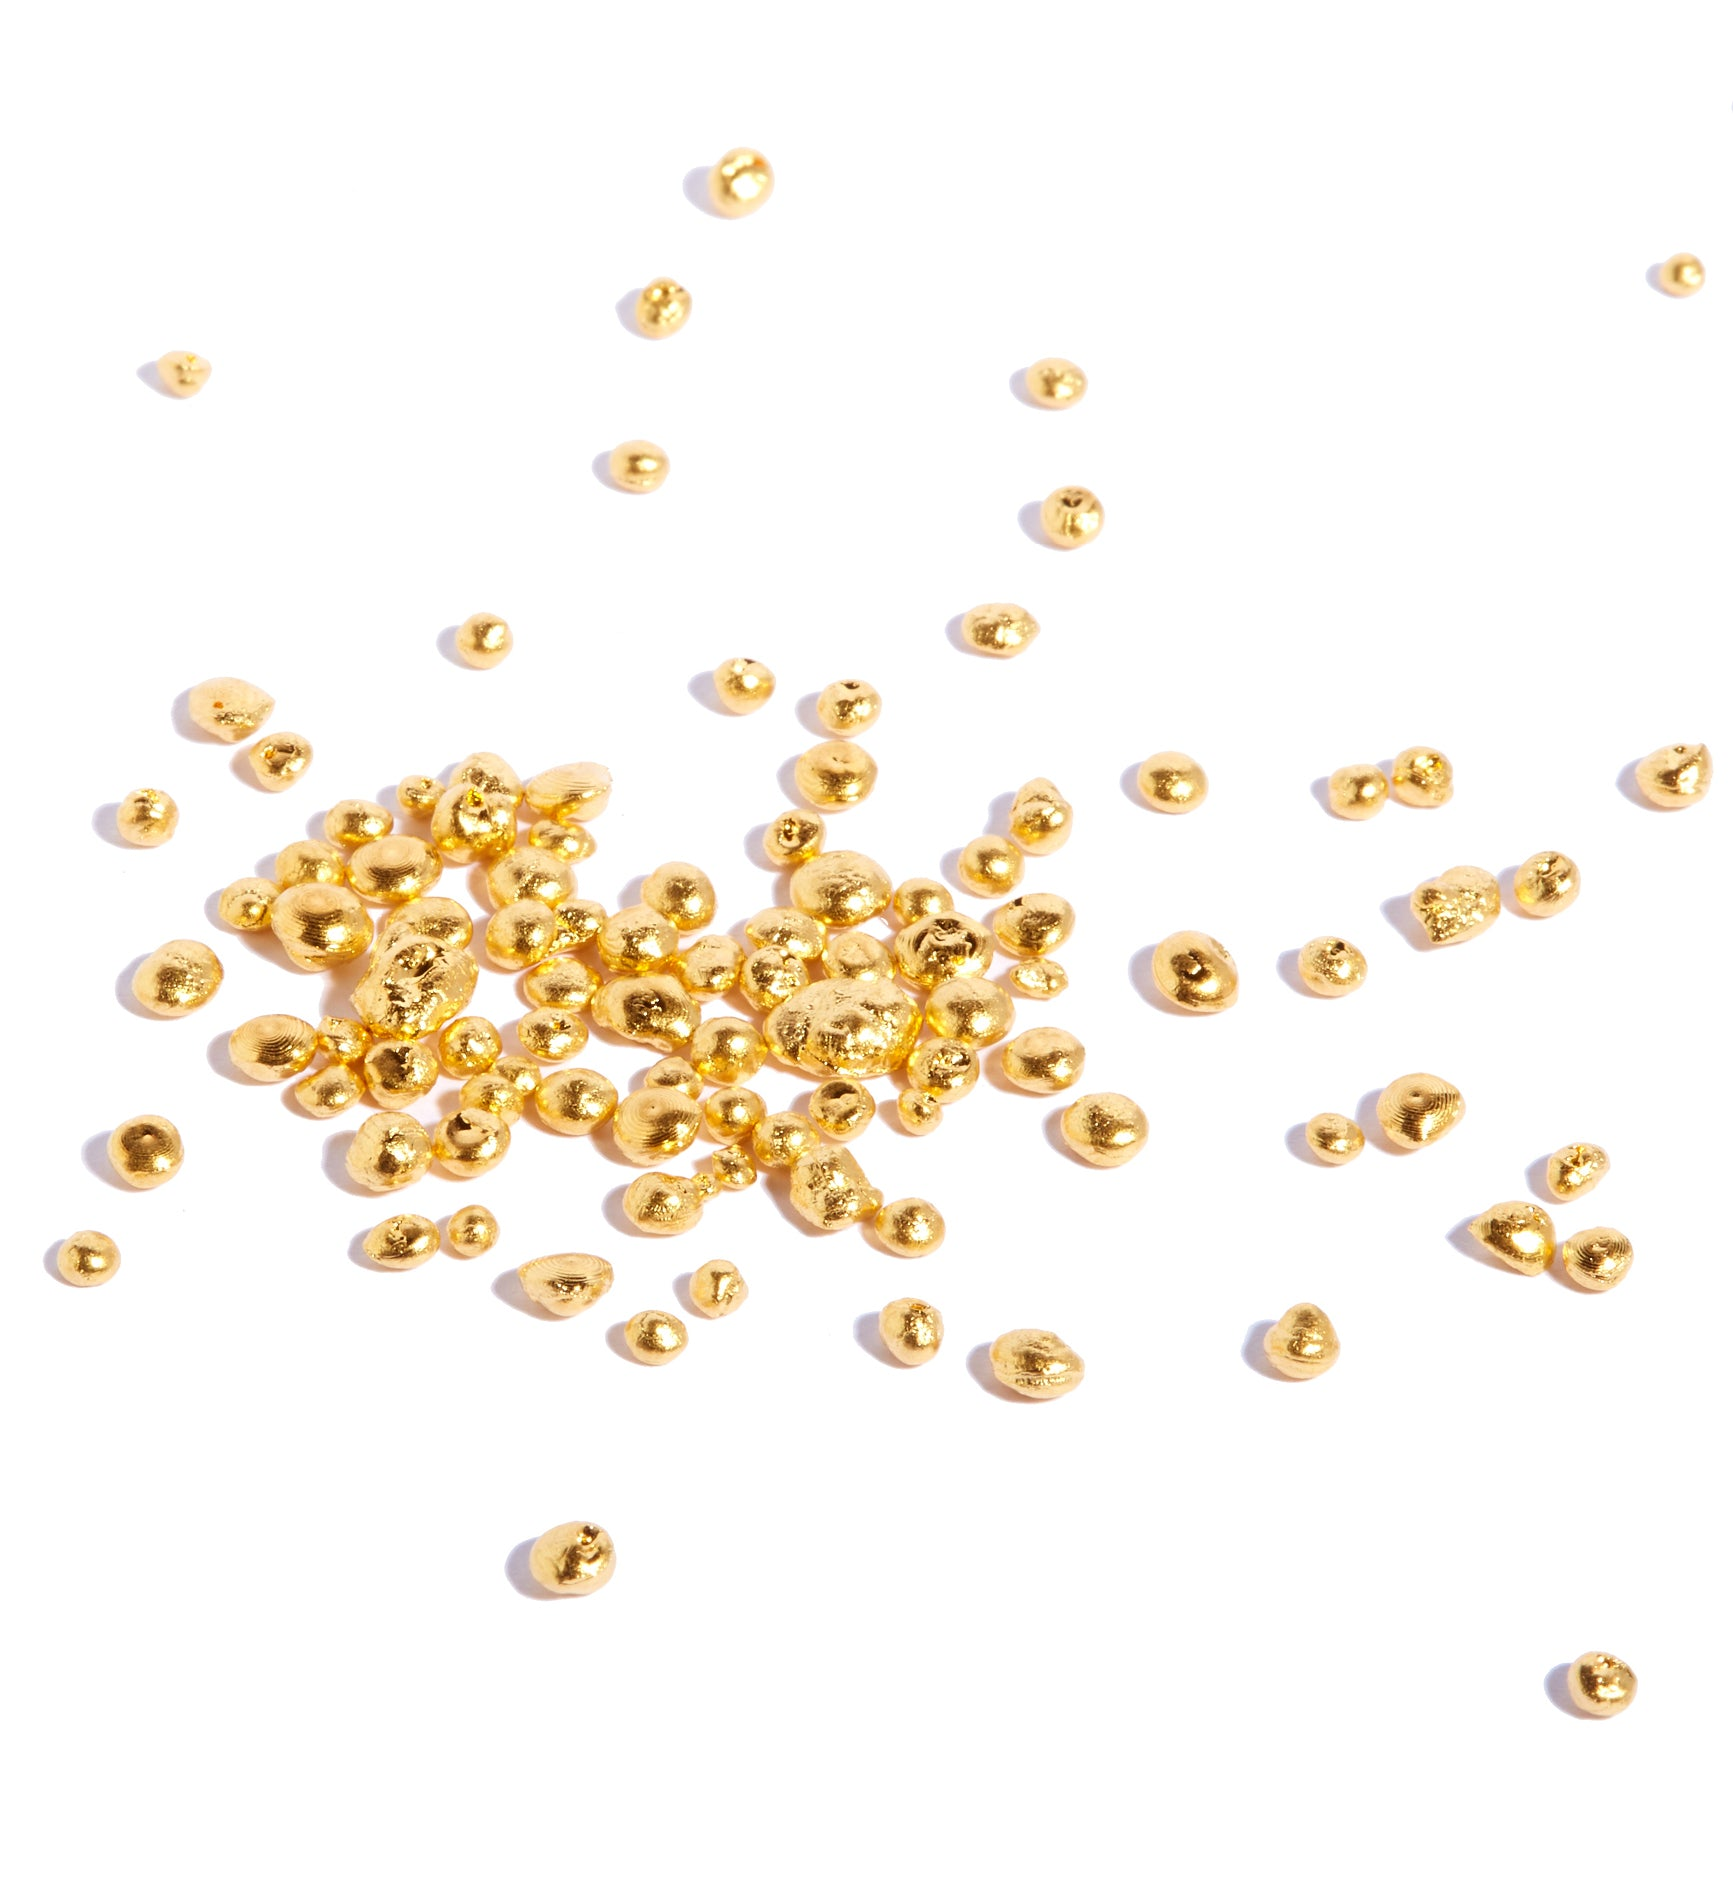 https://cdn.shopify.com/s/files/1/0571/9261/t/15/assets/gold%20granules-1509685206496.jpg?500688498046829115